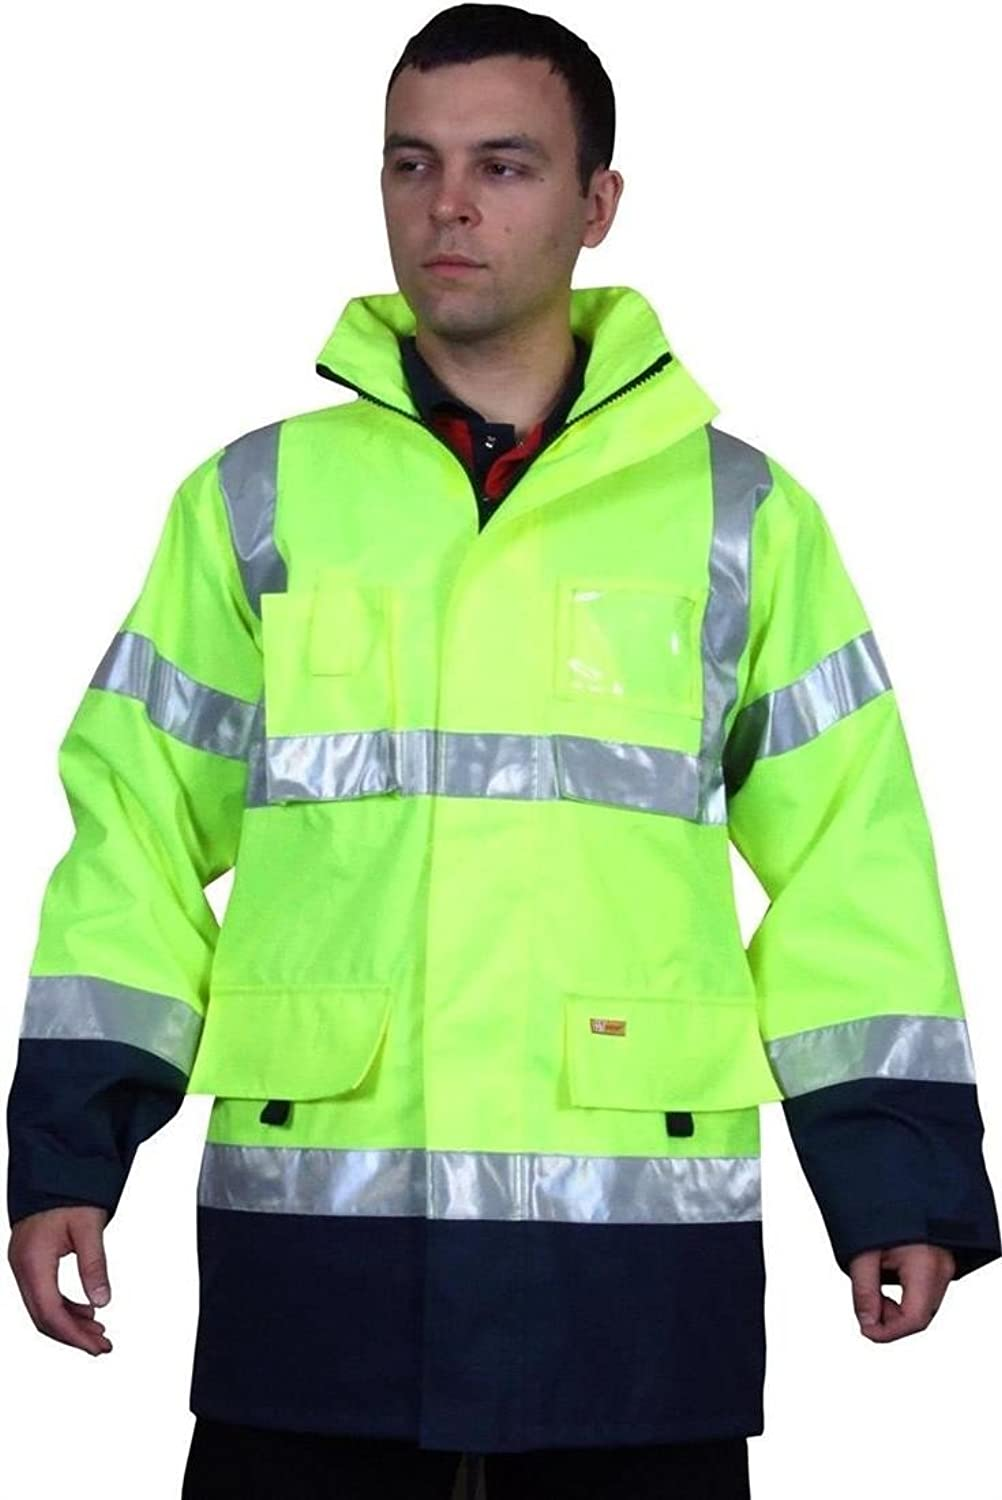 B-Seen Hi Vis Two Tone Breathable Traffic Jacket Yellow/Navy M